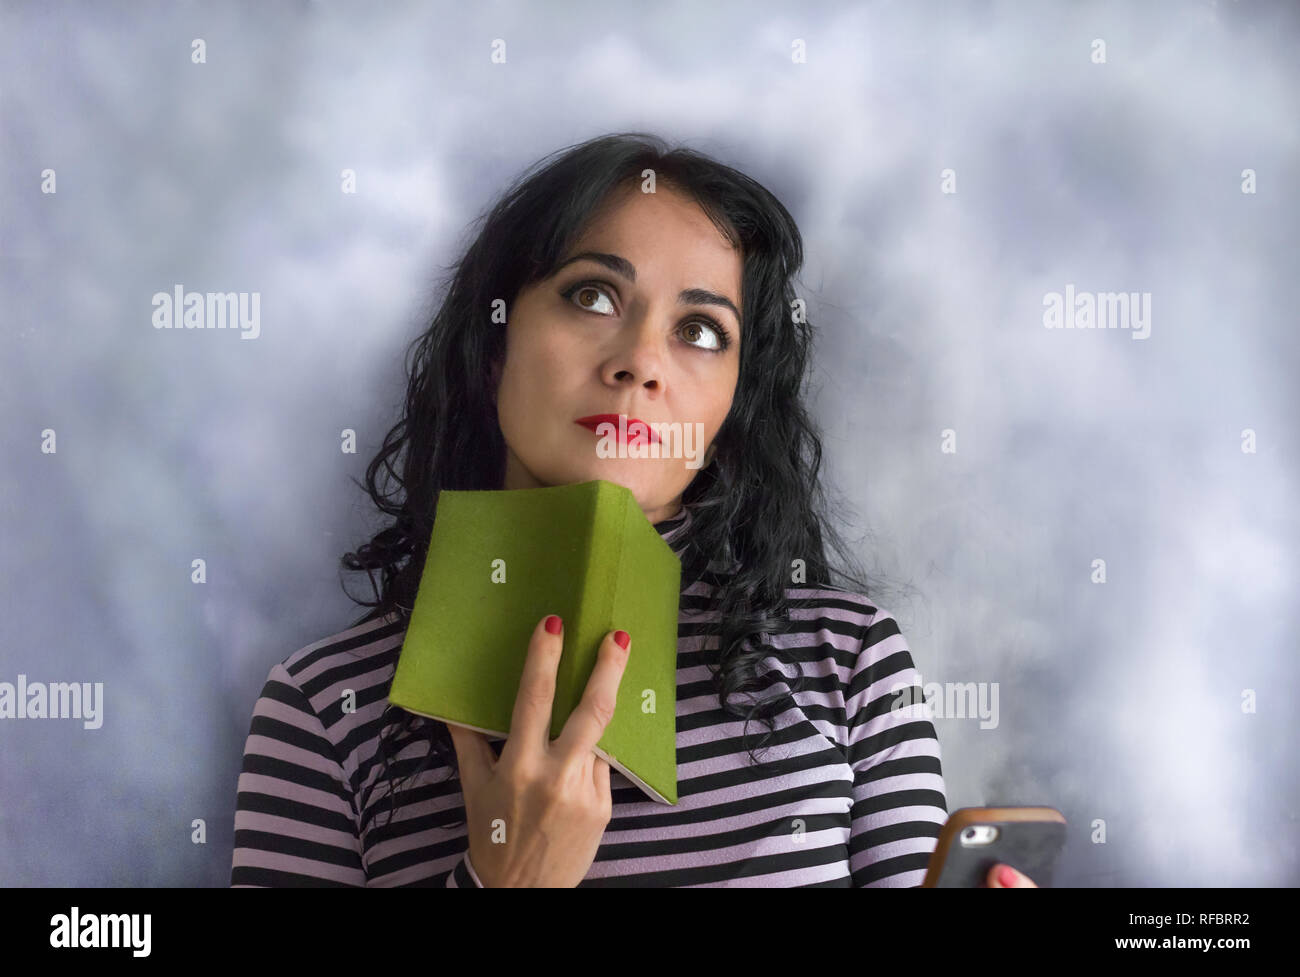 Young brunette woman with striped sweater with a book on her chin thinking about a question, isolated on a gray background - Stock Image